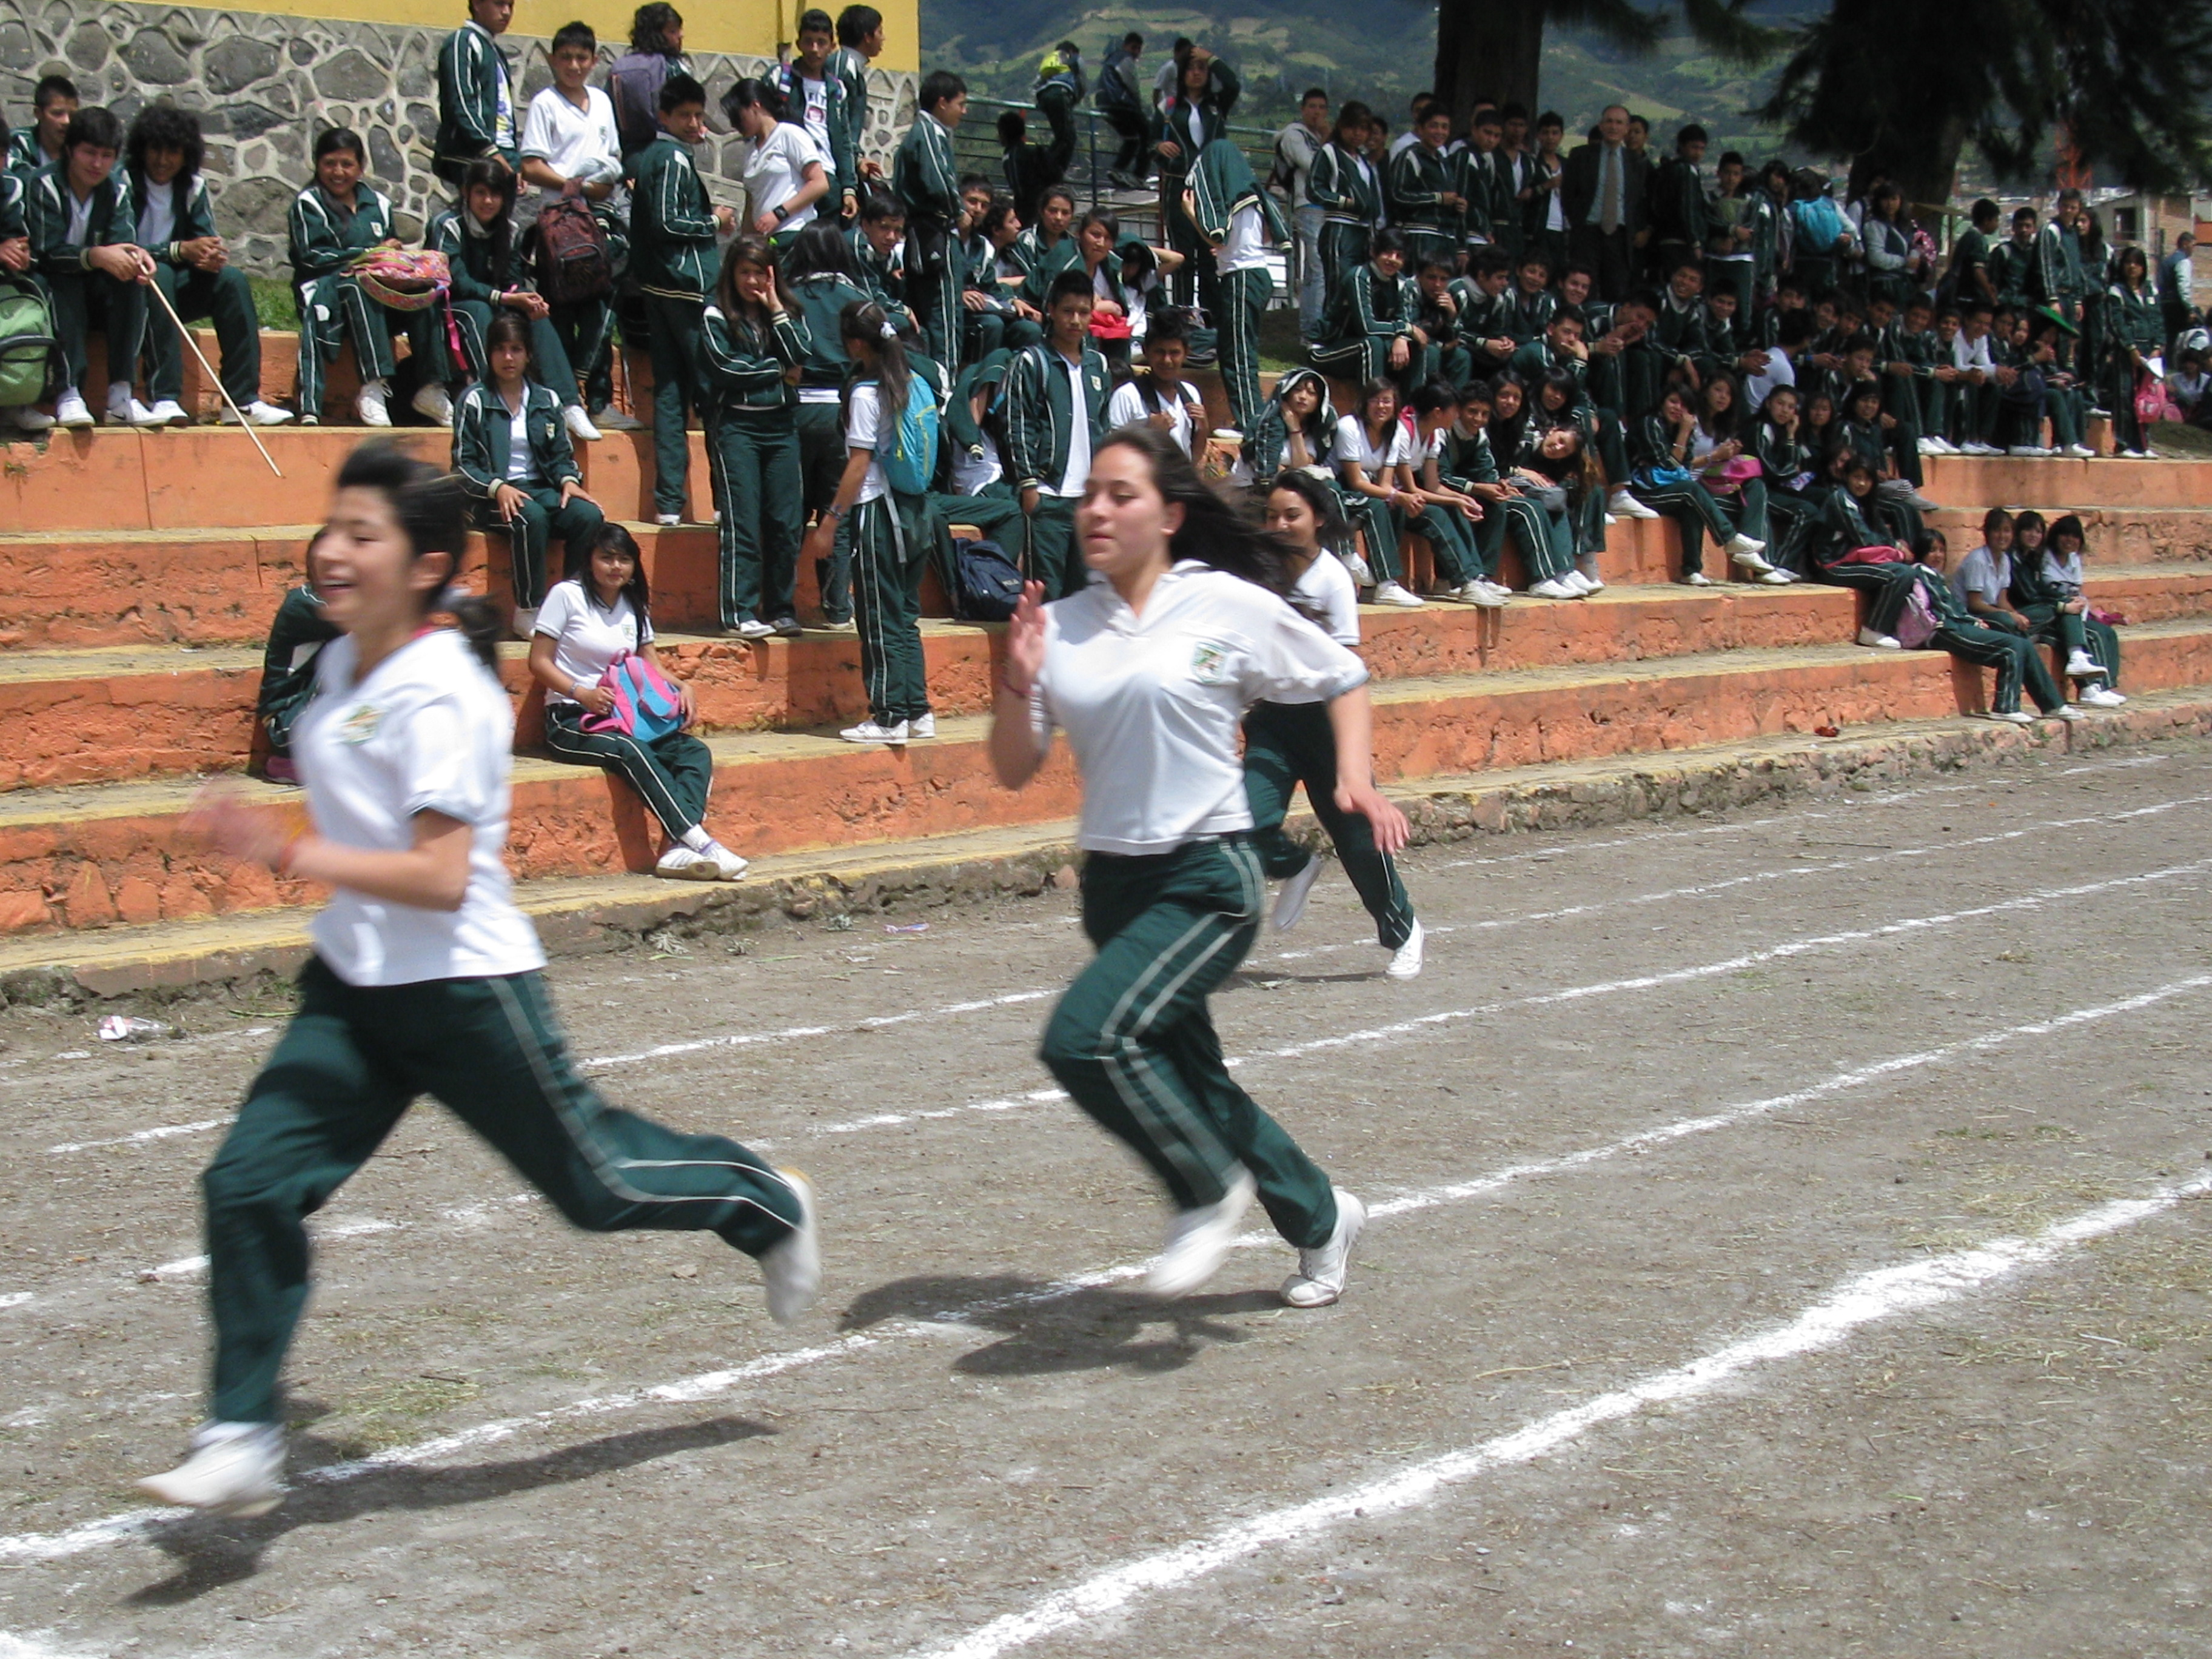 Imagenes de la Escuela Normal Superior de Pasto la Escuela Normal Superior